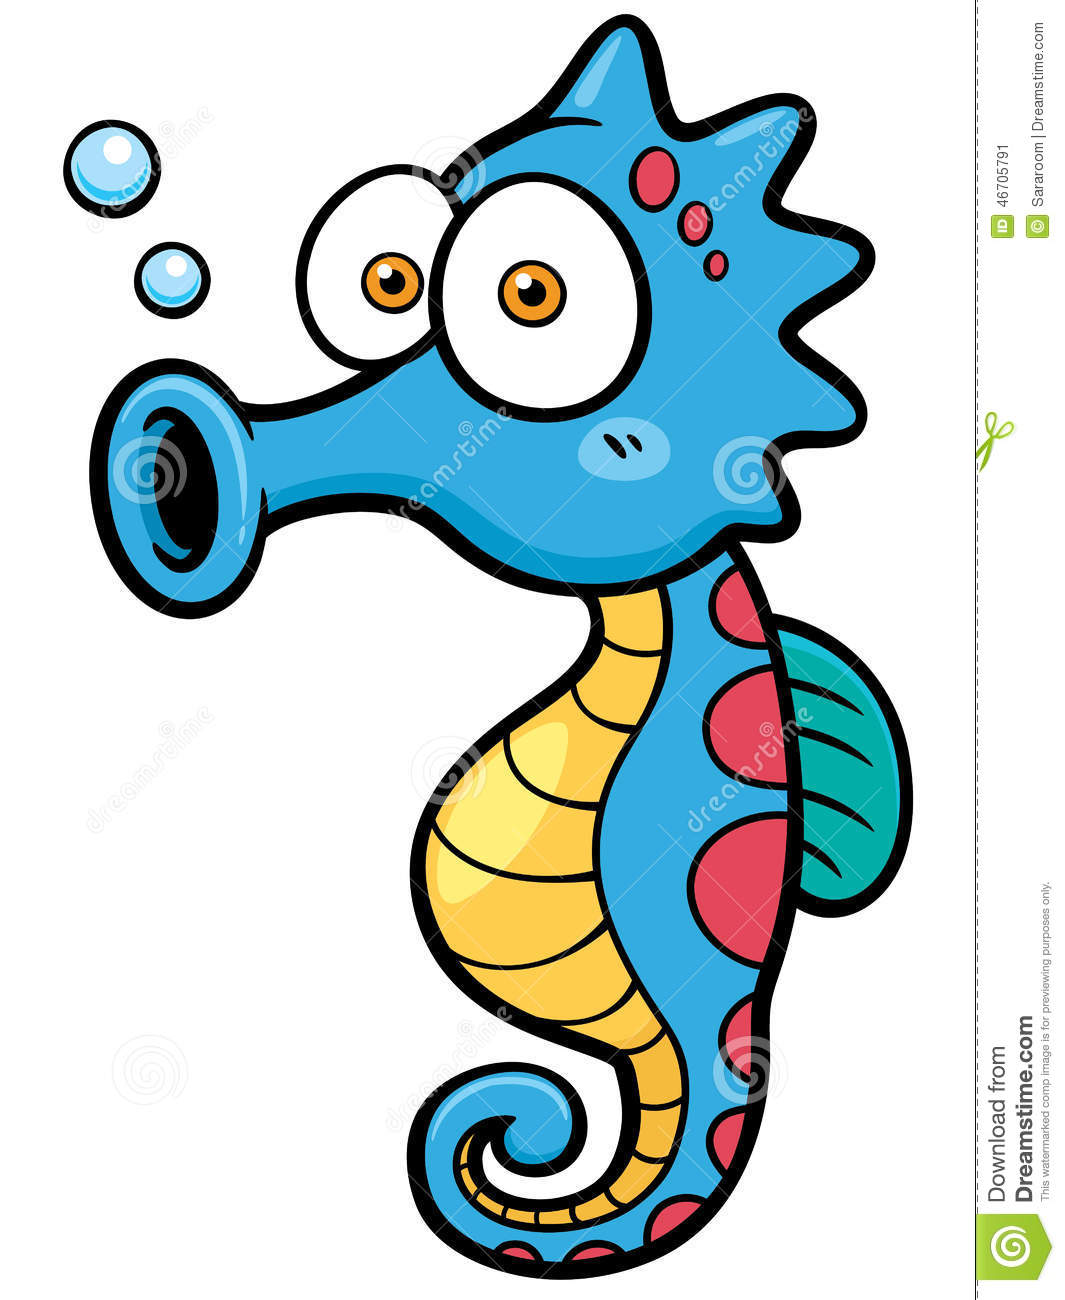 Vector illustration of seahorse cartoon.